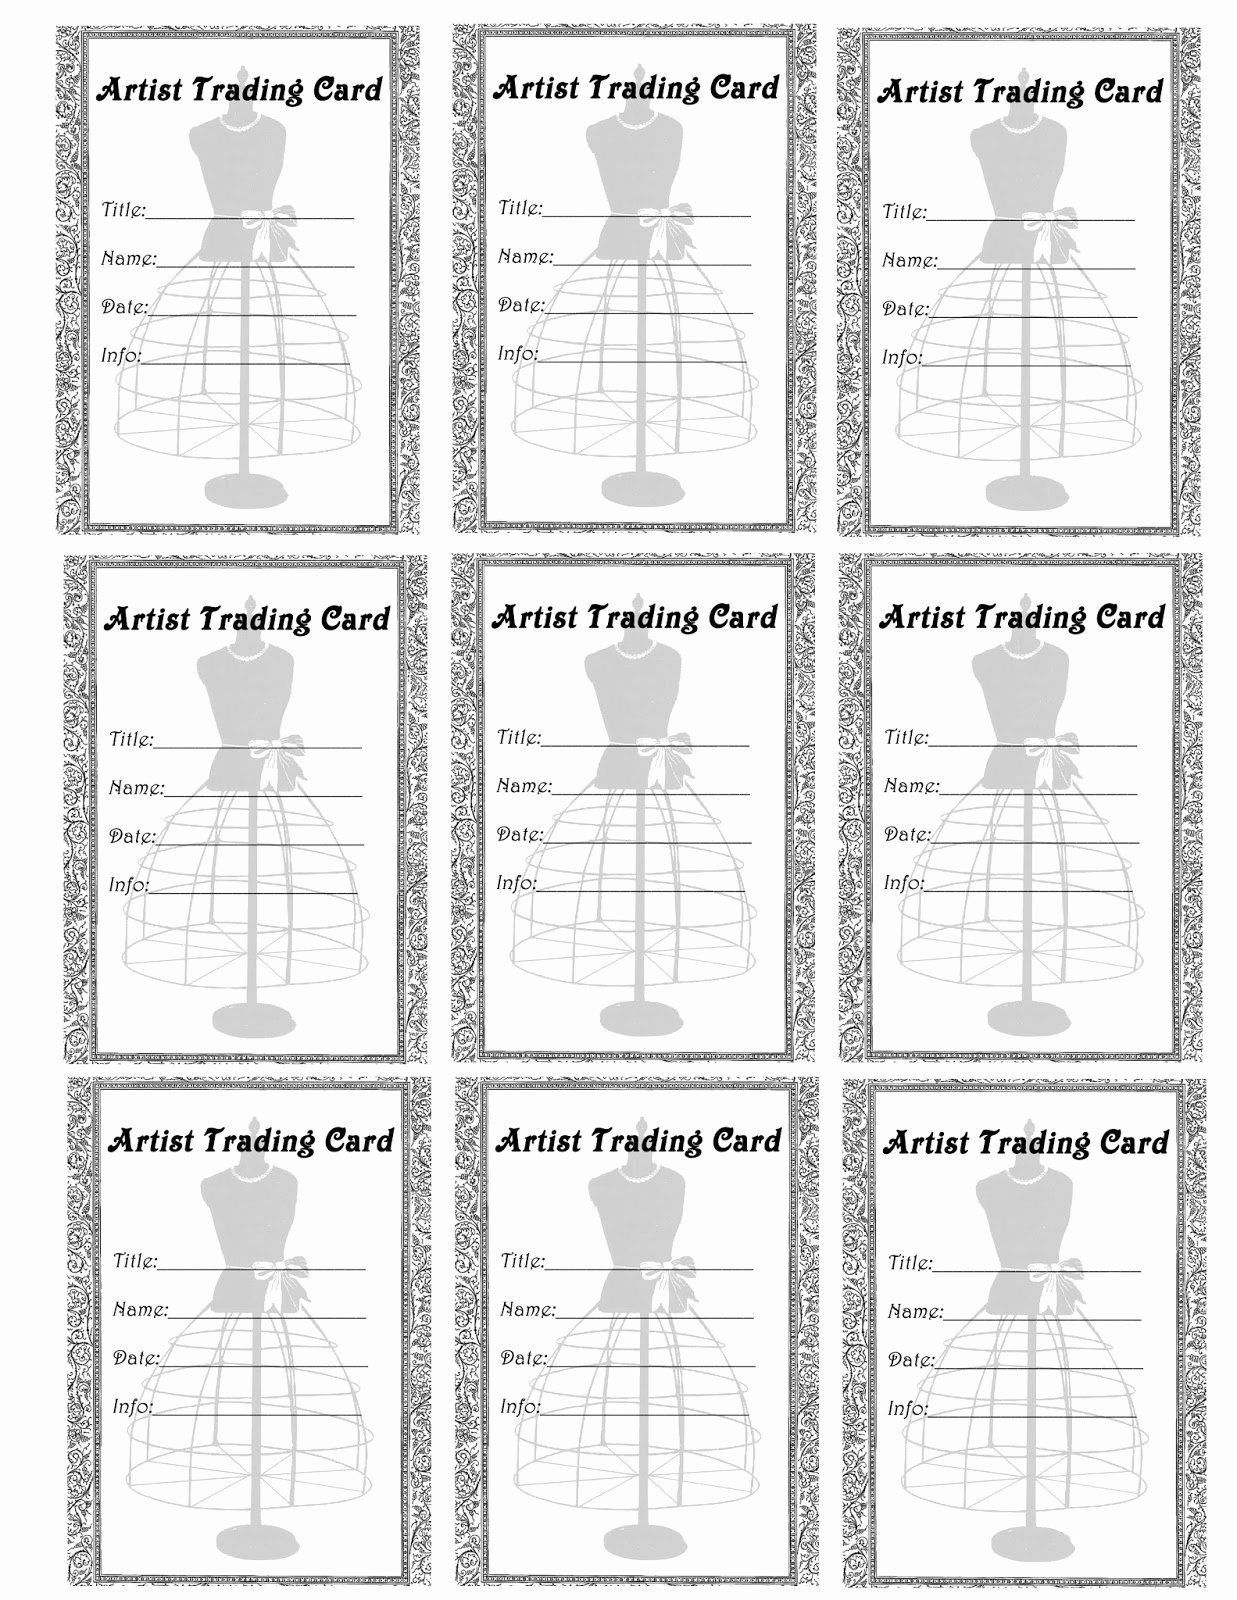 Free Trading Card Template Lovely Free Vintage Digital Stamps Free Printable Artist